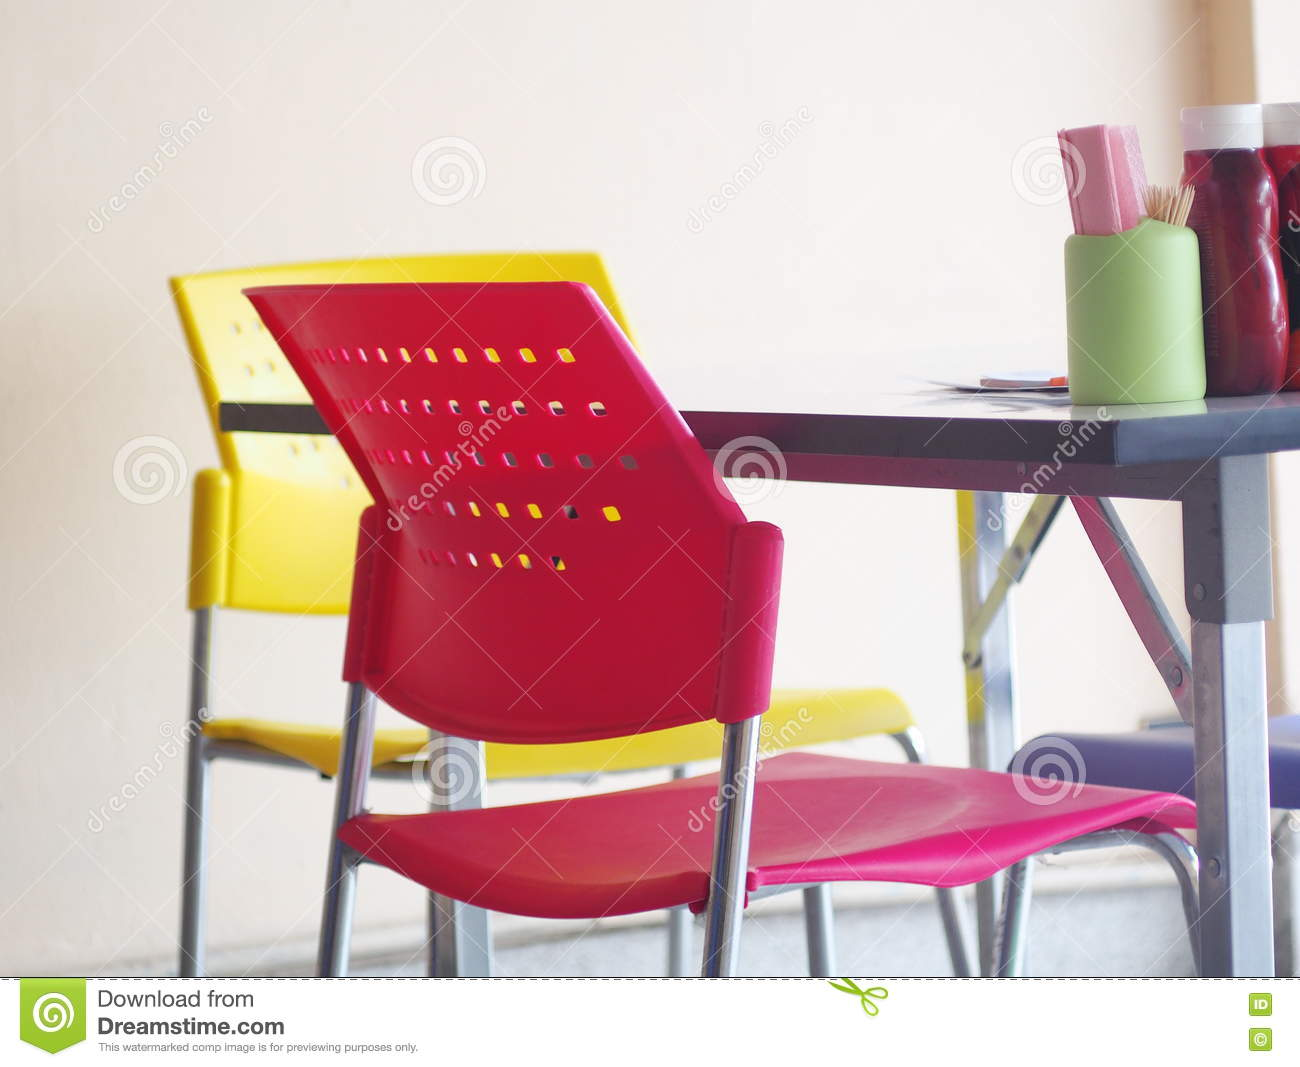 Contemporary interior style decoration and furniture in noodle shop